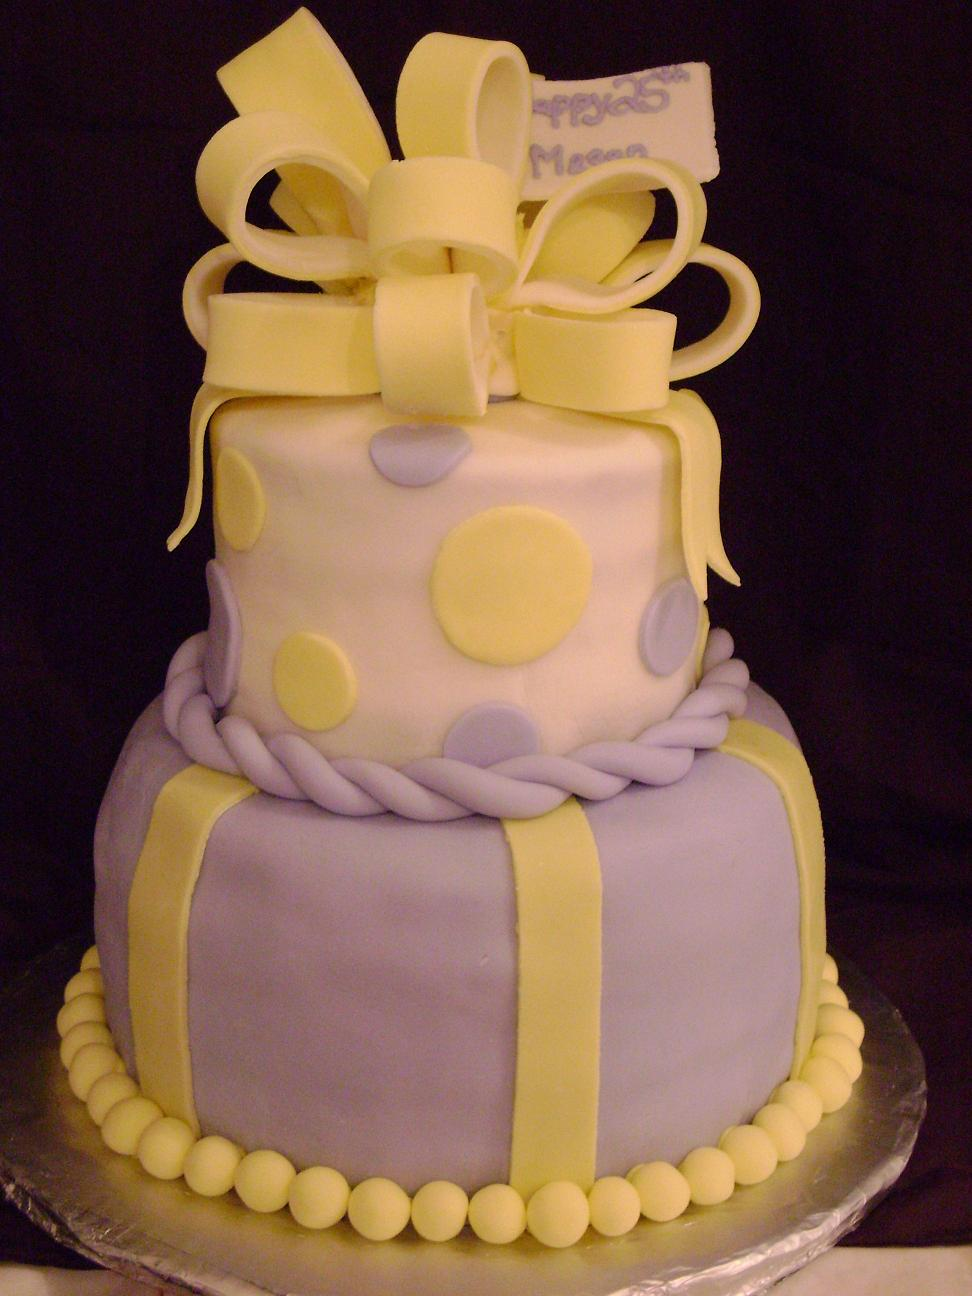 This 2 Tiered Cake Was Created For A Friend Her 25th Birthday Favorite Colours Are Purple Yellow And White She Had Picture Of